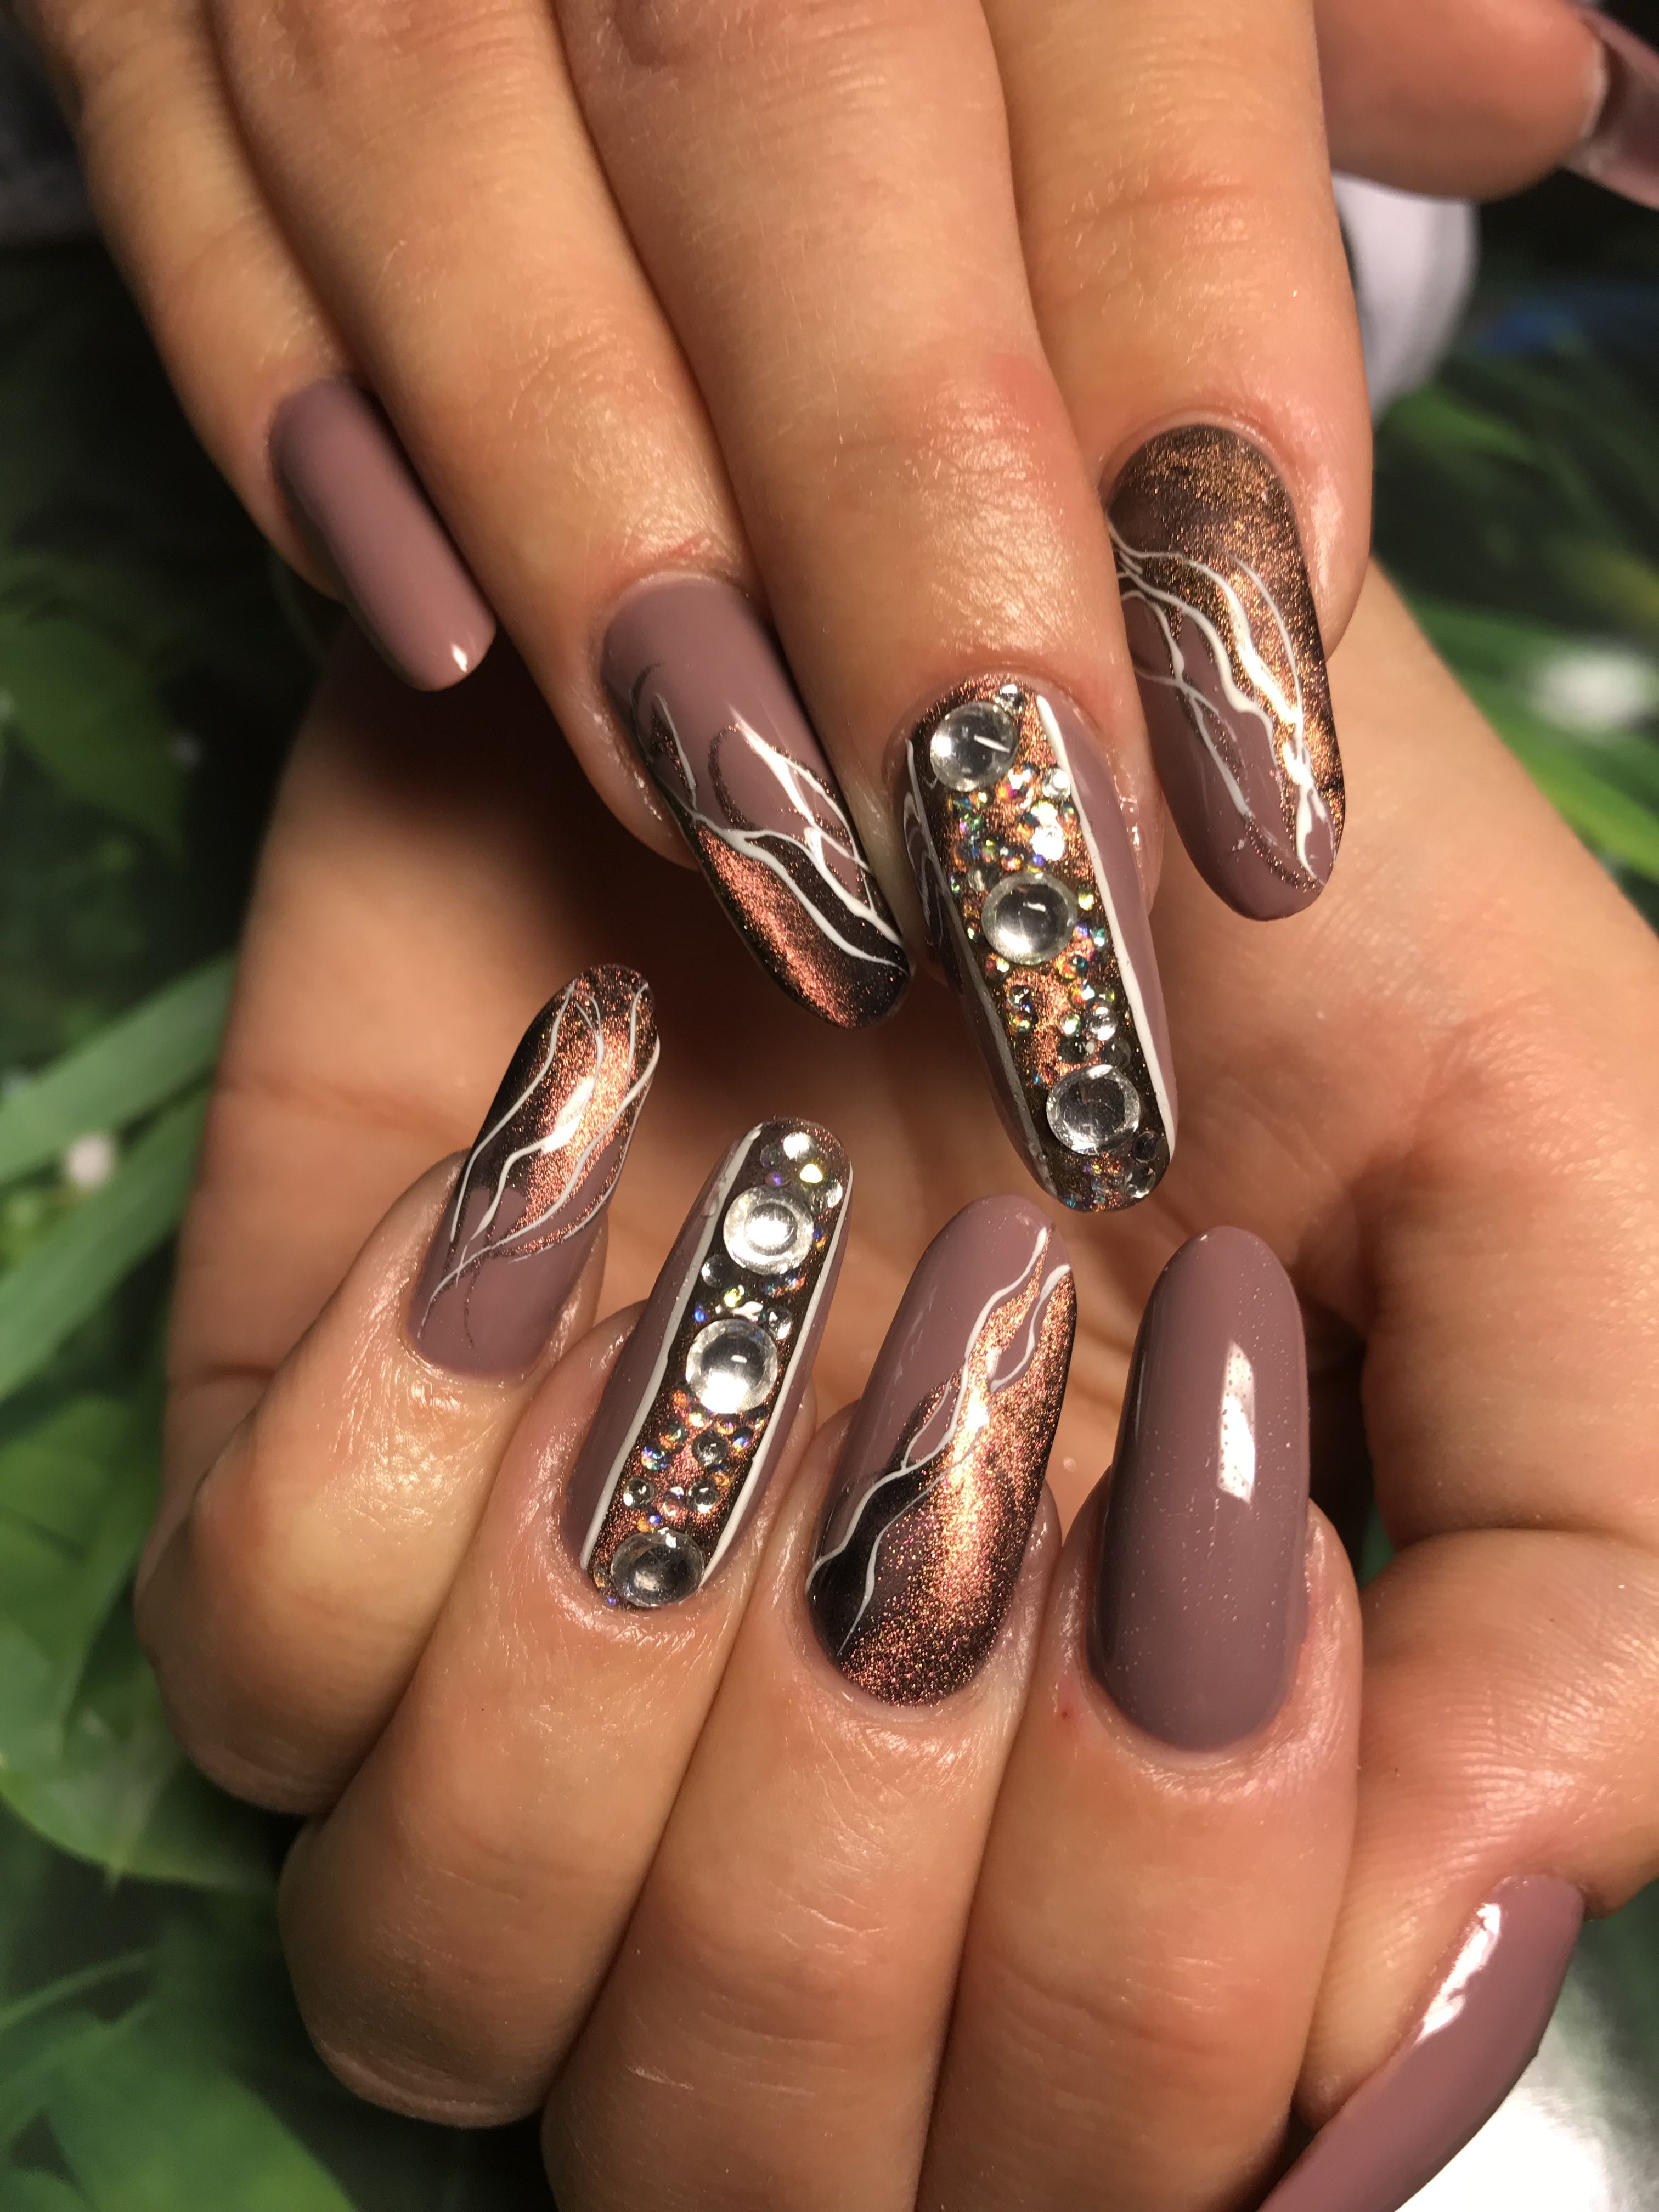 Pin by April Mckenzie on Fall Nail Ideas | Pinterest